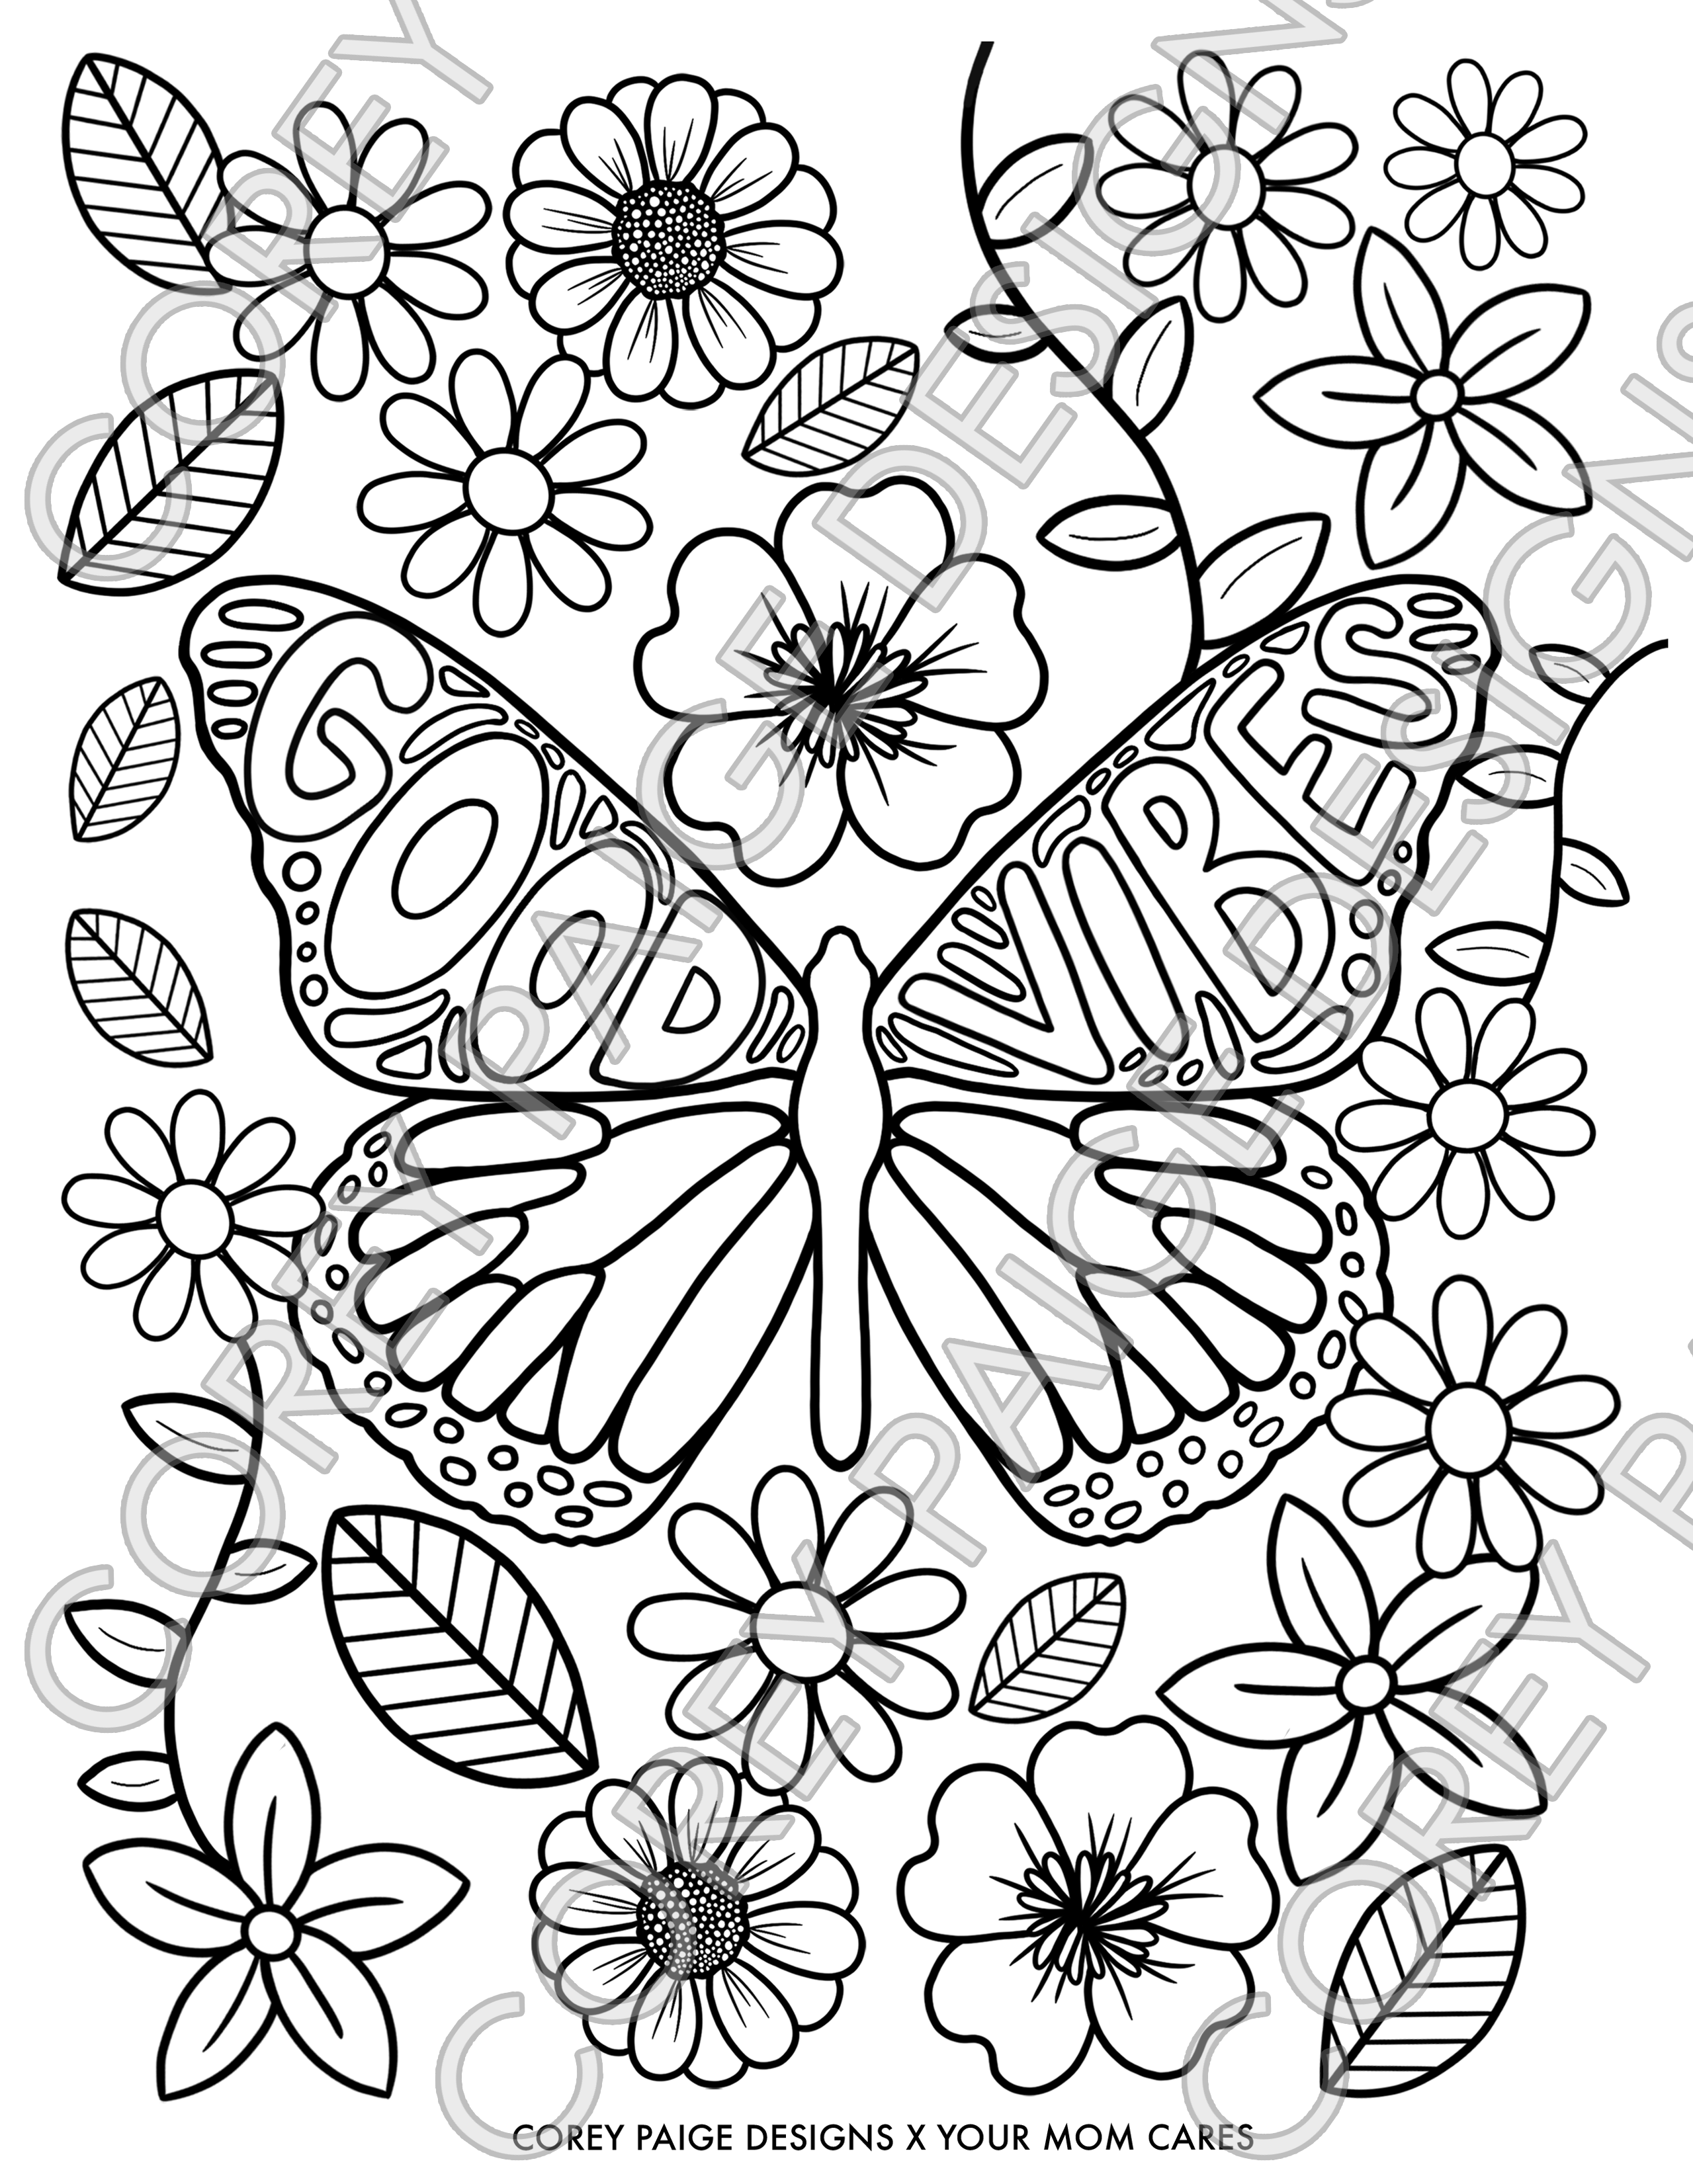 Good Vibes Butterfly Coloring Sheet